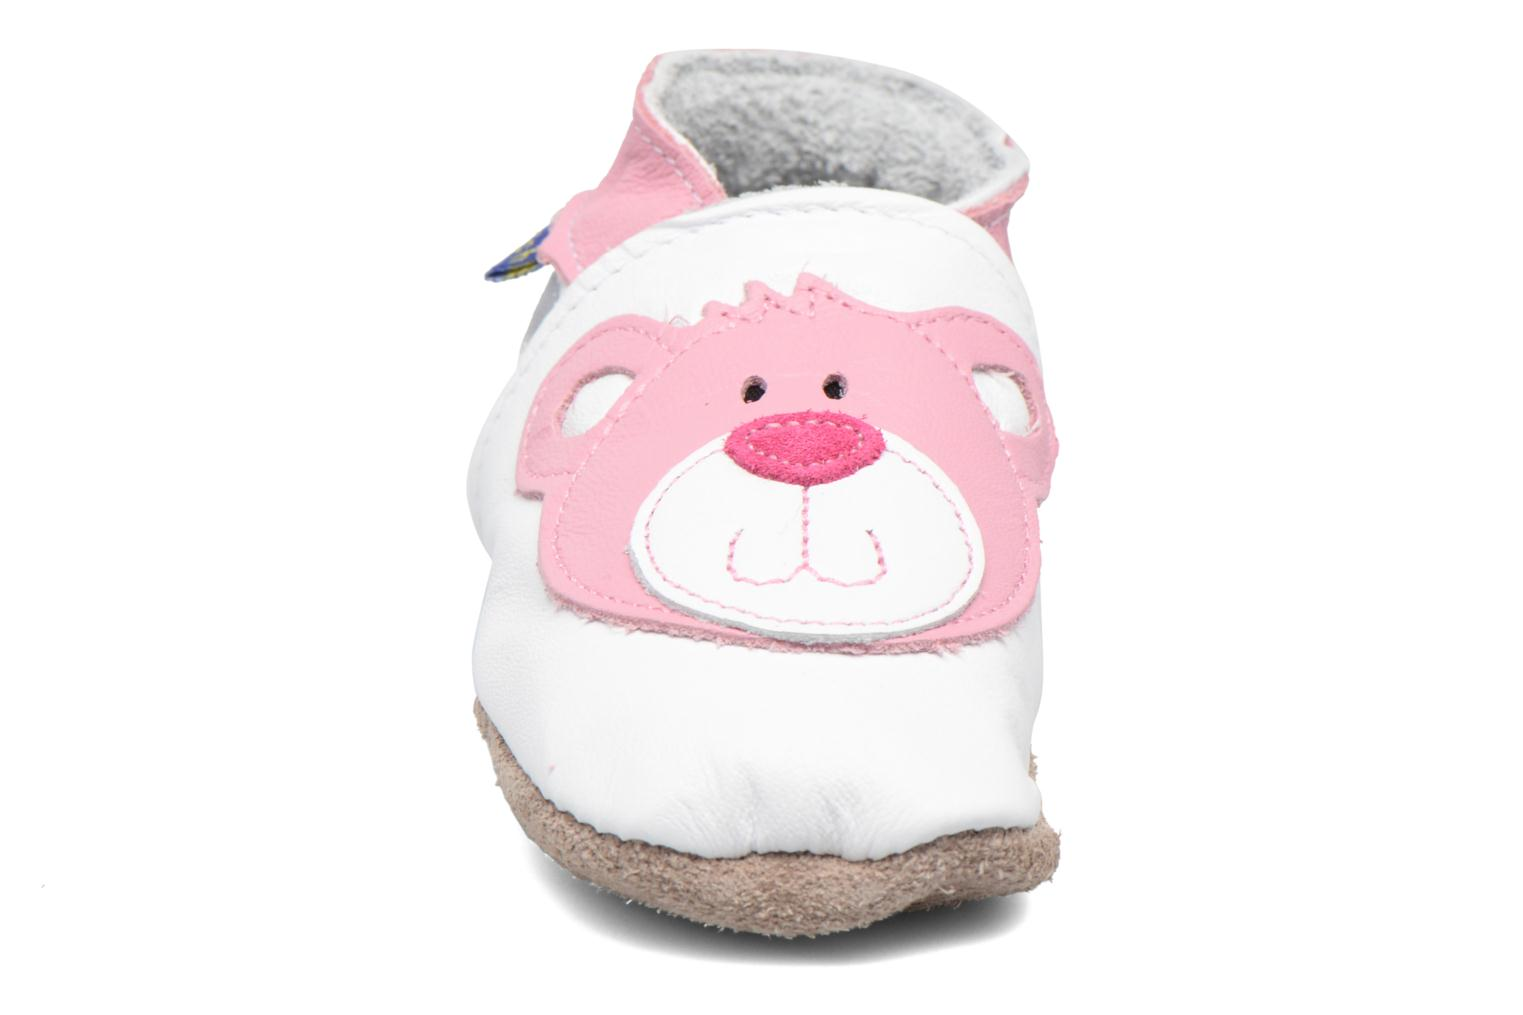 Chaussons Inch Blue Teddy Pink Blanc vue portées chaussures